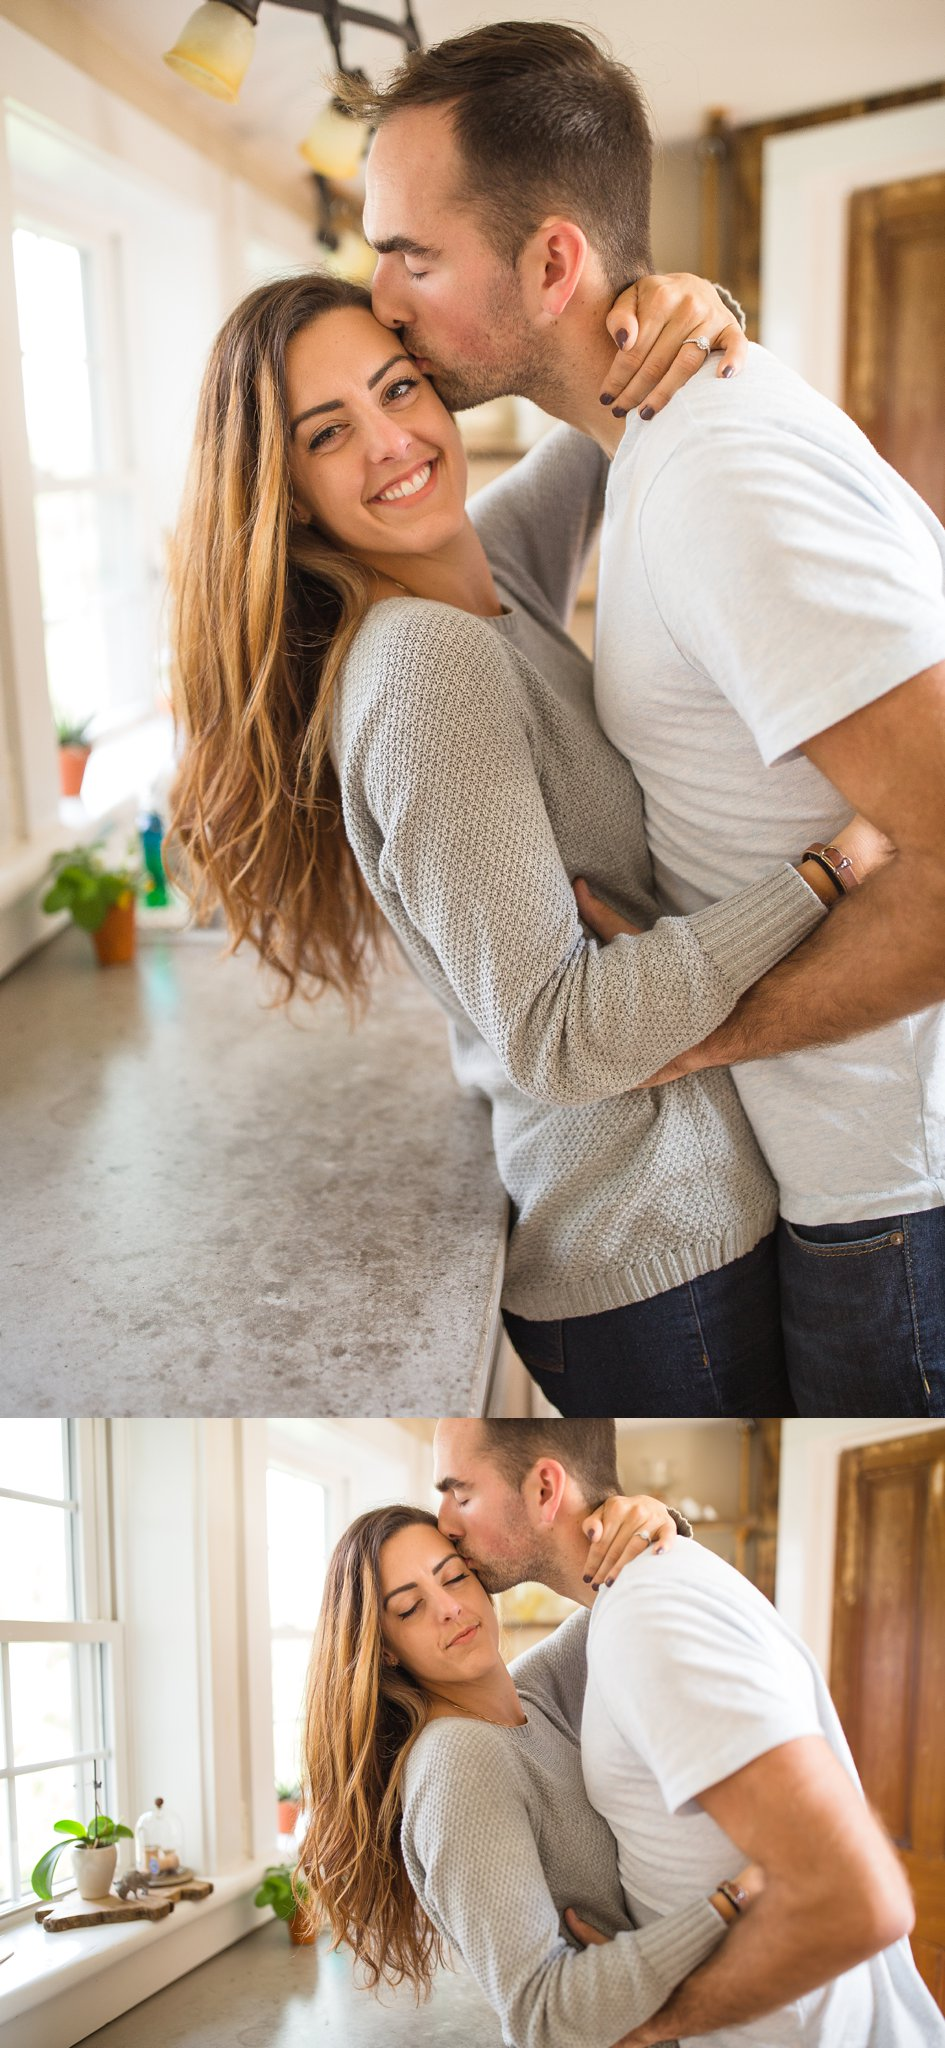 Indoor-Intimate-Engagement-Session14.jpg